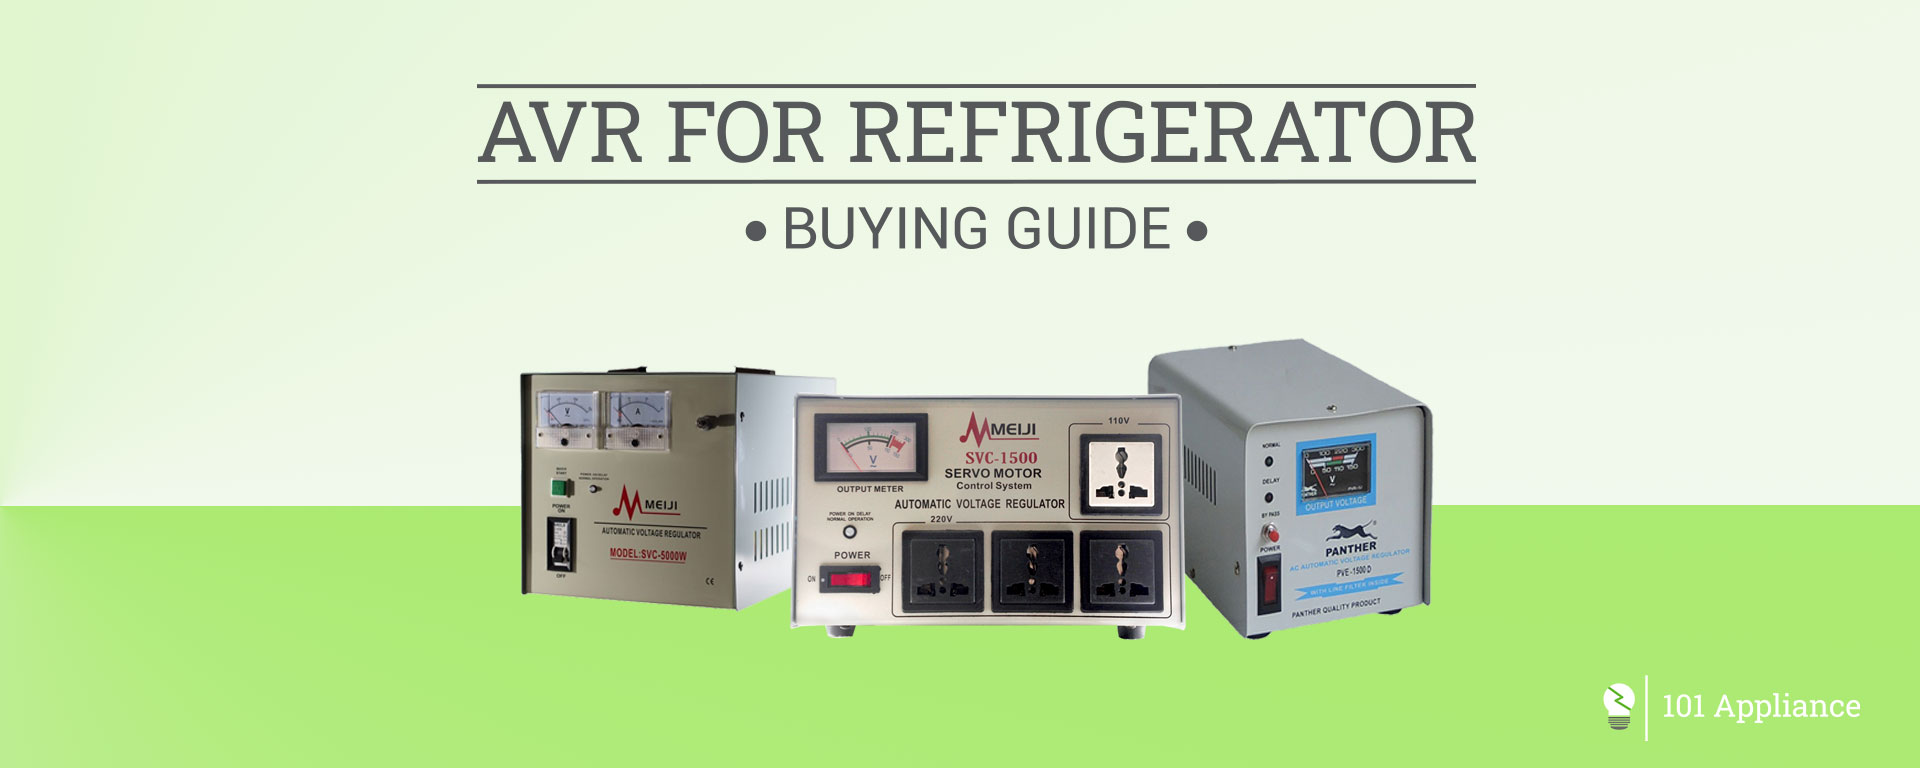 AVR for refrigerator buying guide